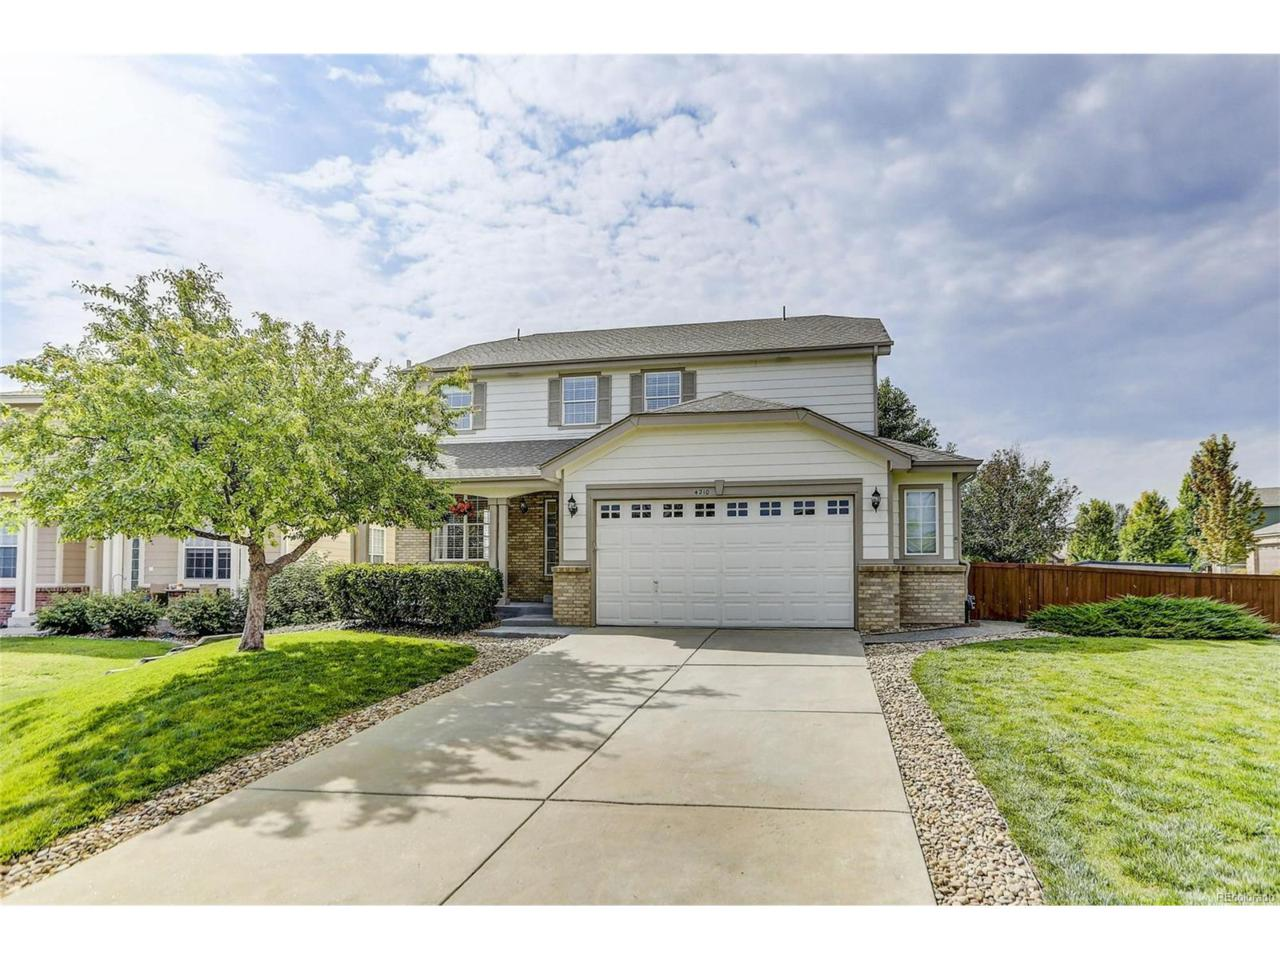 4210 Lexi Circle, Broomfield, CO 80023 (MLS #7982822) :: 8z Real Estate